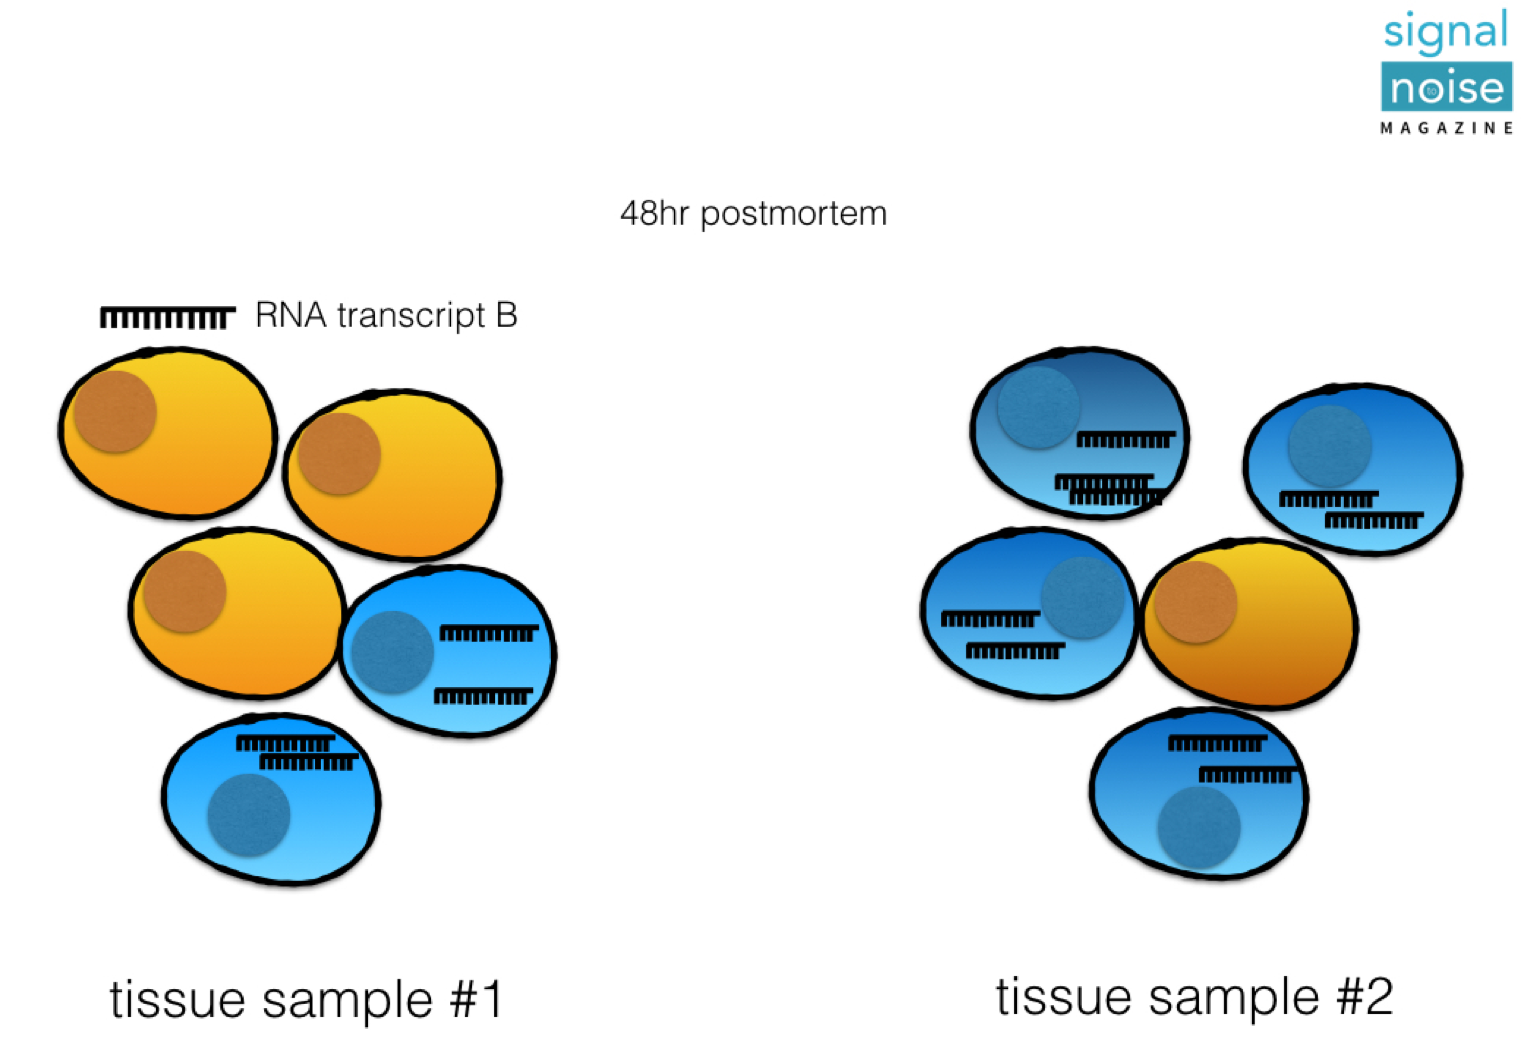 FIGURE 3. THE EFFECT OF CELL TYPE WHEN COMPARING DIFFERENT TISSUE SAMPLES. DIFFERENCES IN TRANSCRIPT B AT 48hr DUE TO VARIABLE COMPOSITION. TRANSCRIPTOMES ARE BEST STUDIED AT THE INDIVIDUAL CELL-TYPE LEVEL.